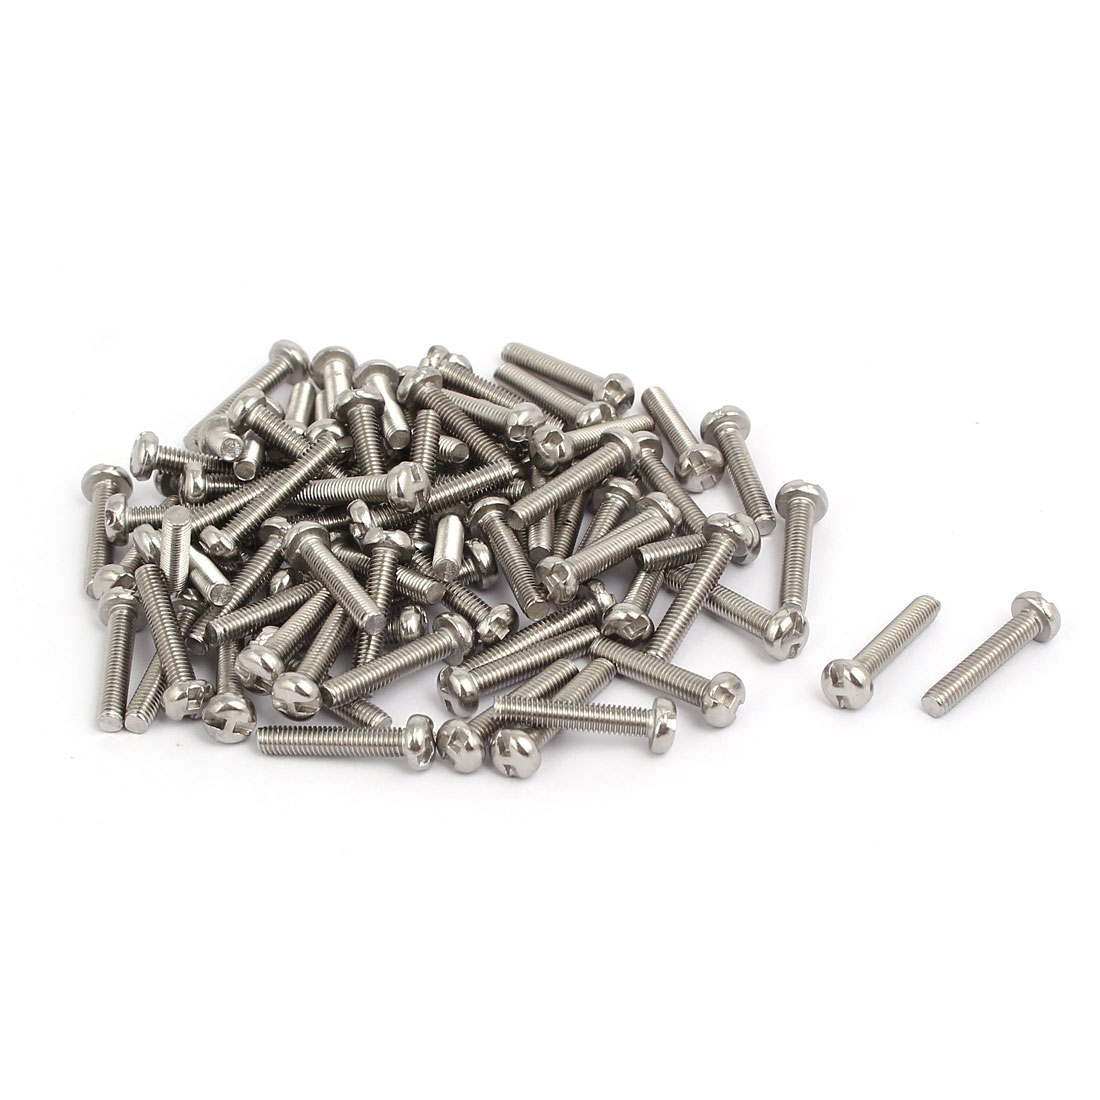 M3x16mm 304 Stainless Steel H-Type Drive Pan Head Tamper Proof Screws 80pcs